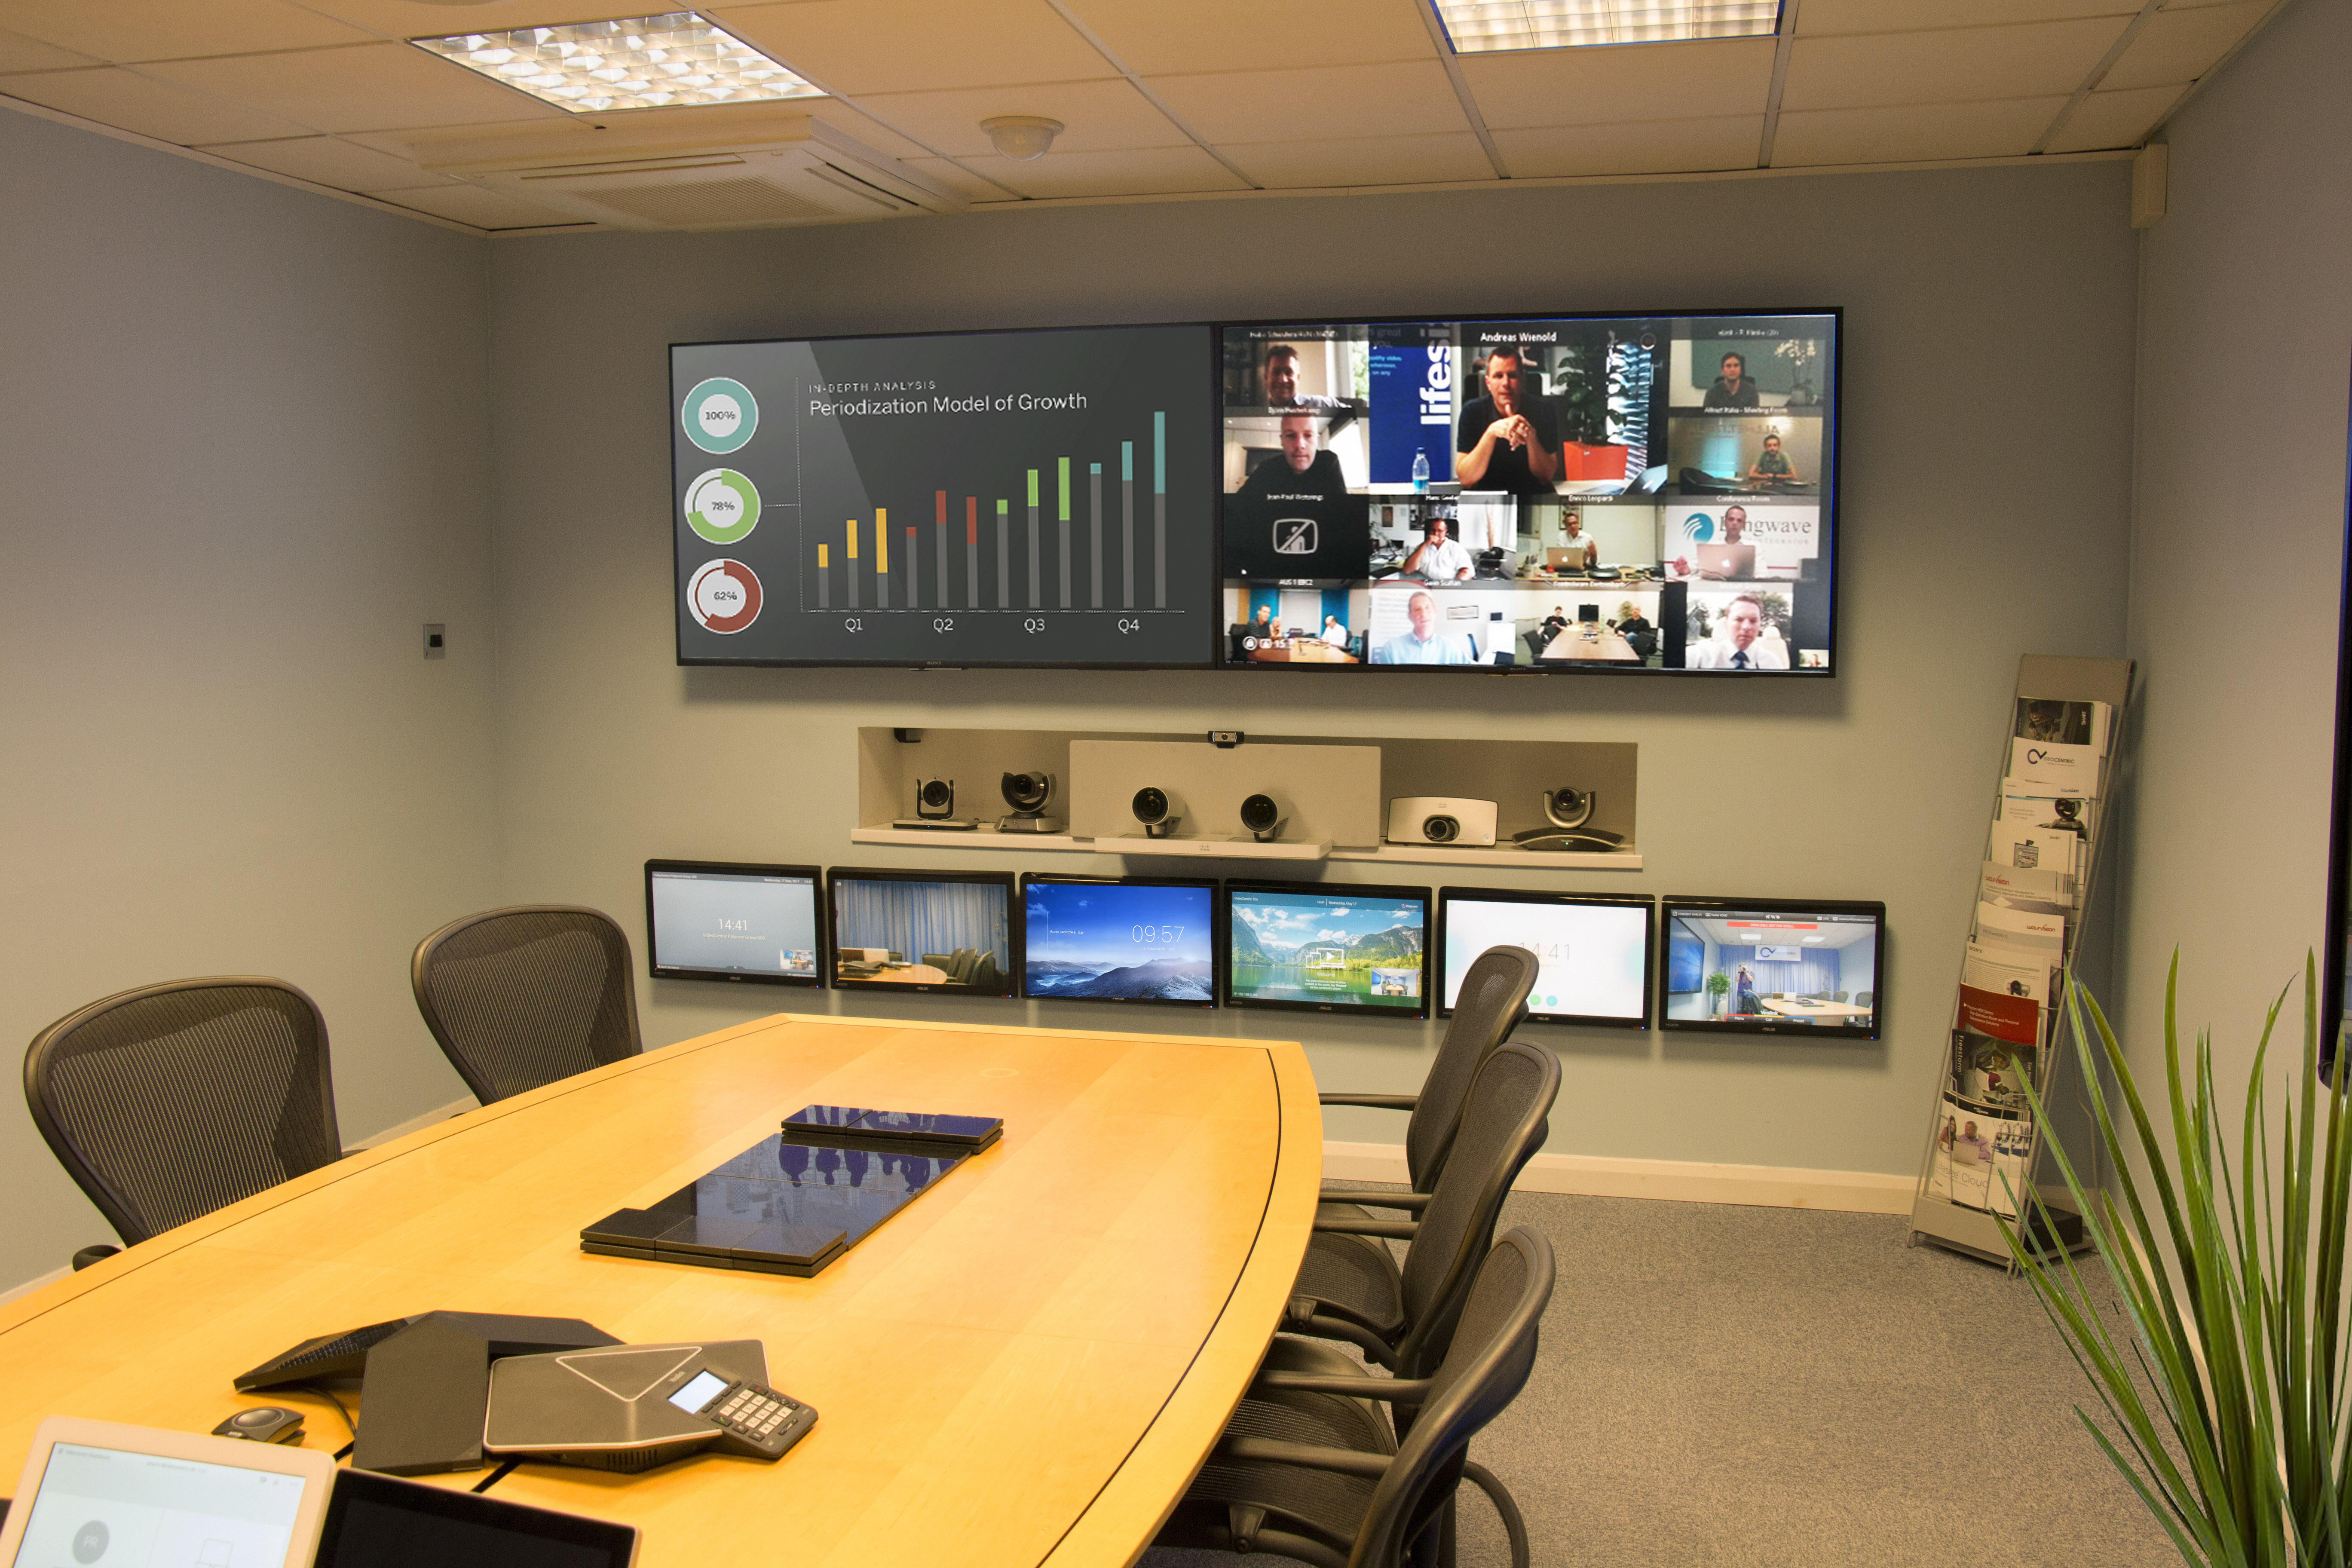 VideoCentric Boardroom demo suite